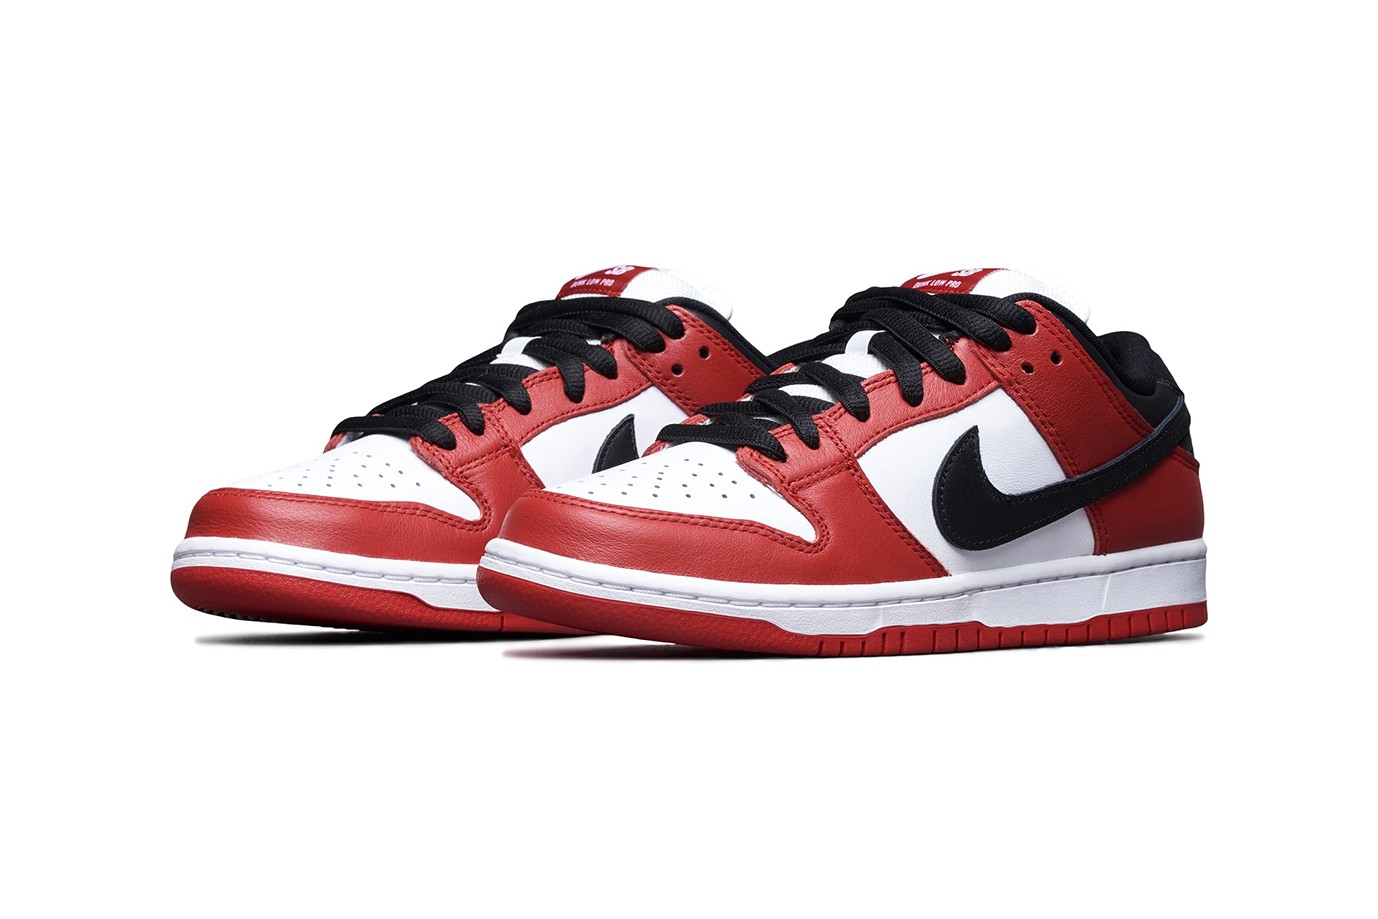 Nike SB's Dunk Low Pro J-Pack'Chicago' is coming soon